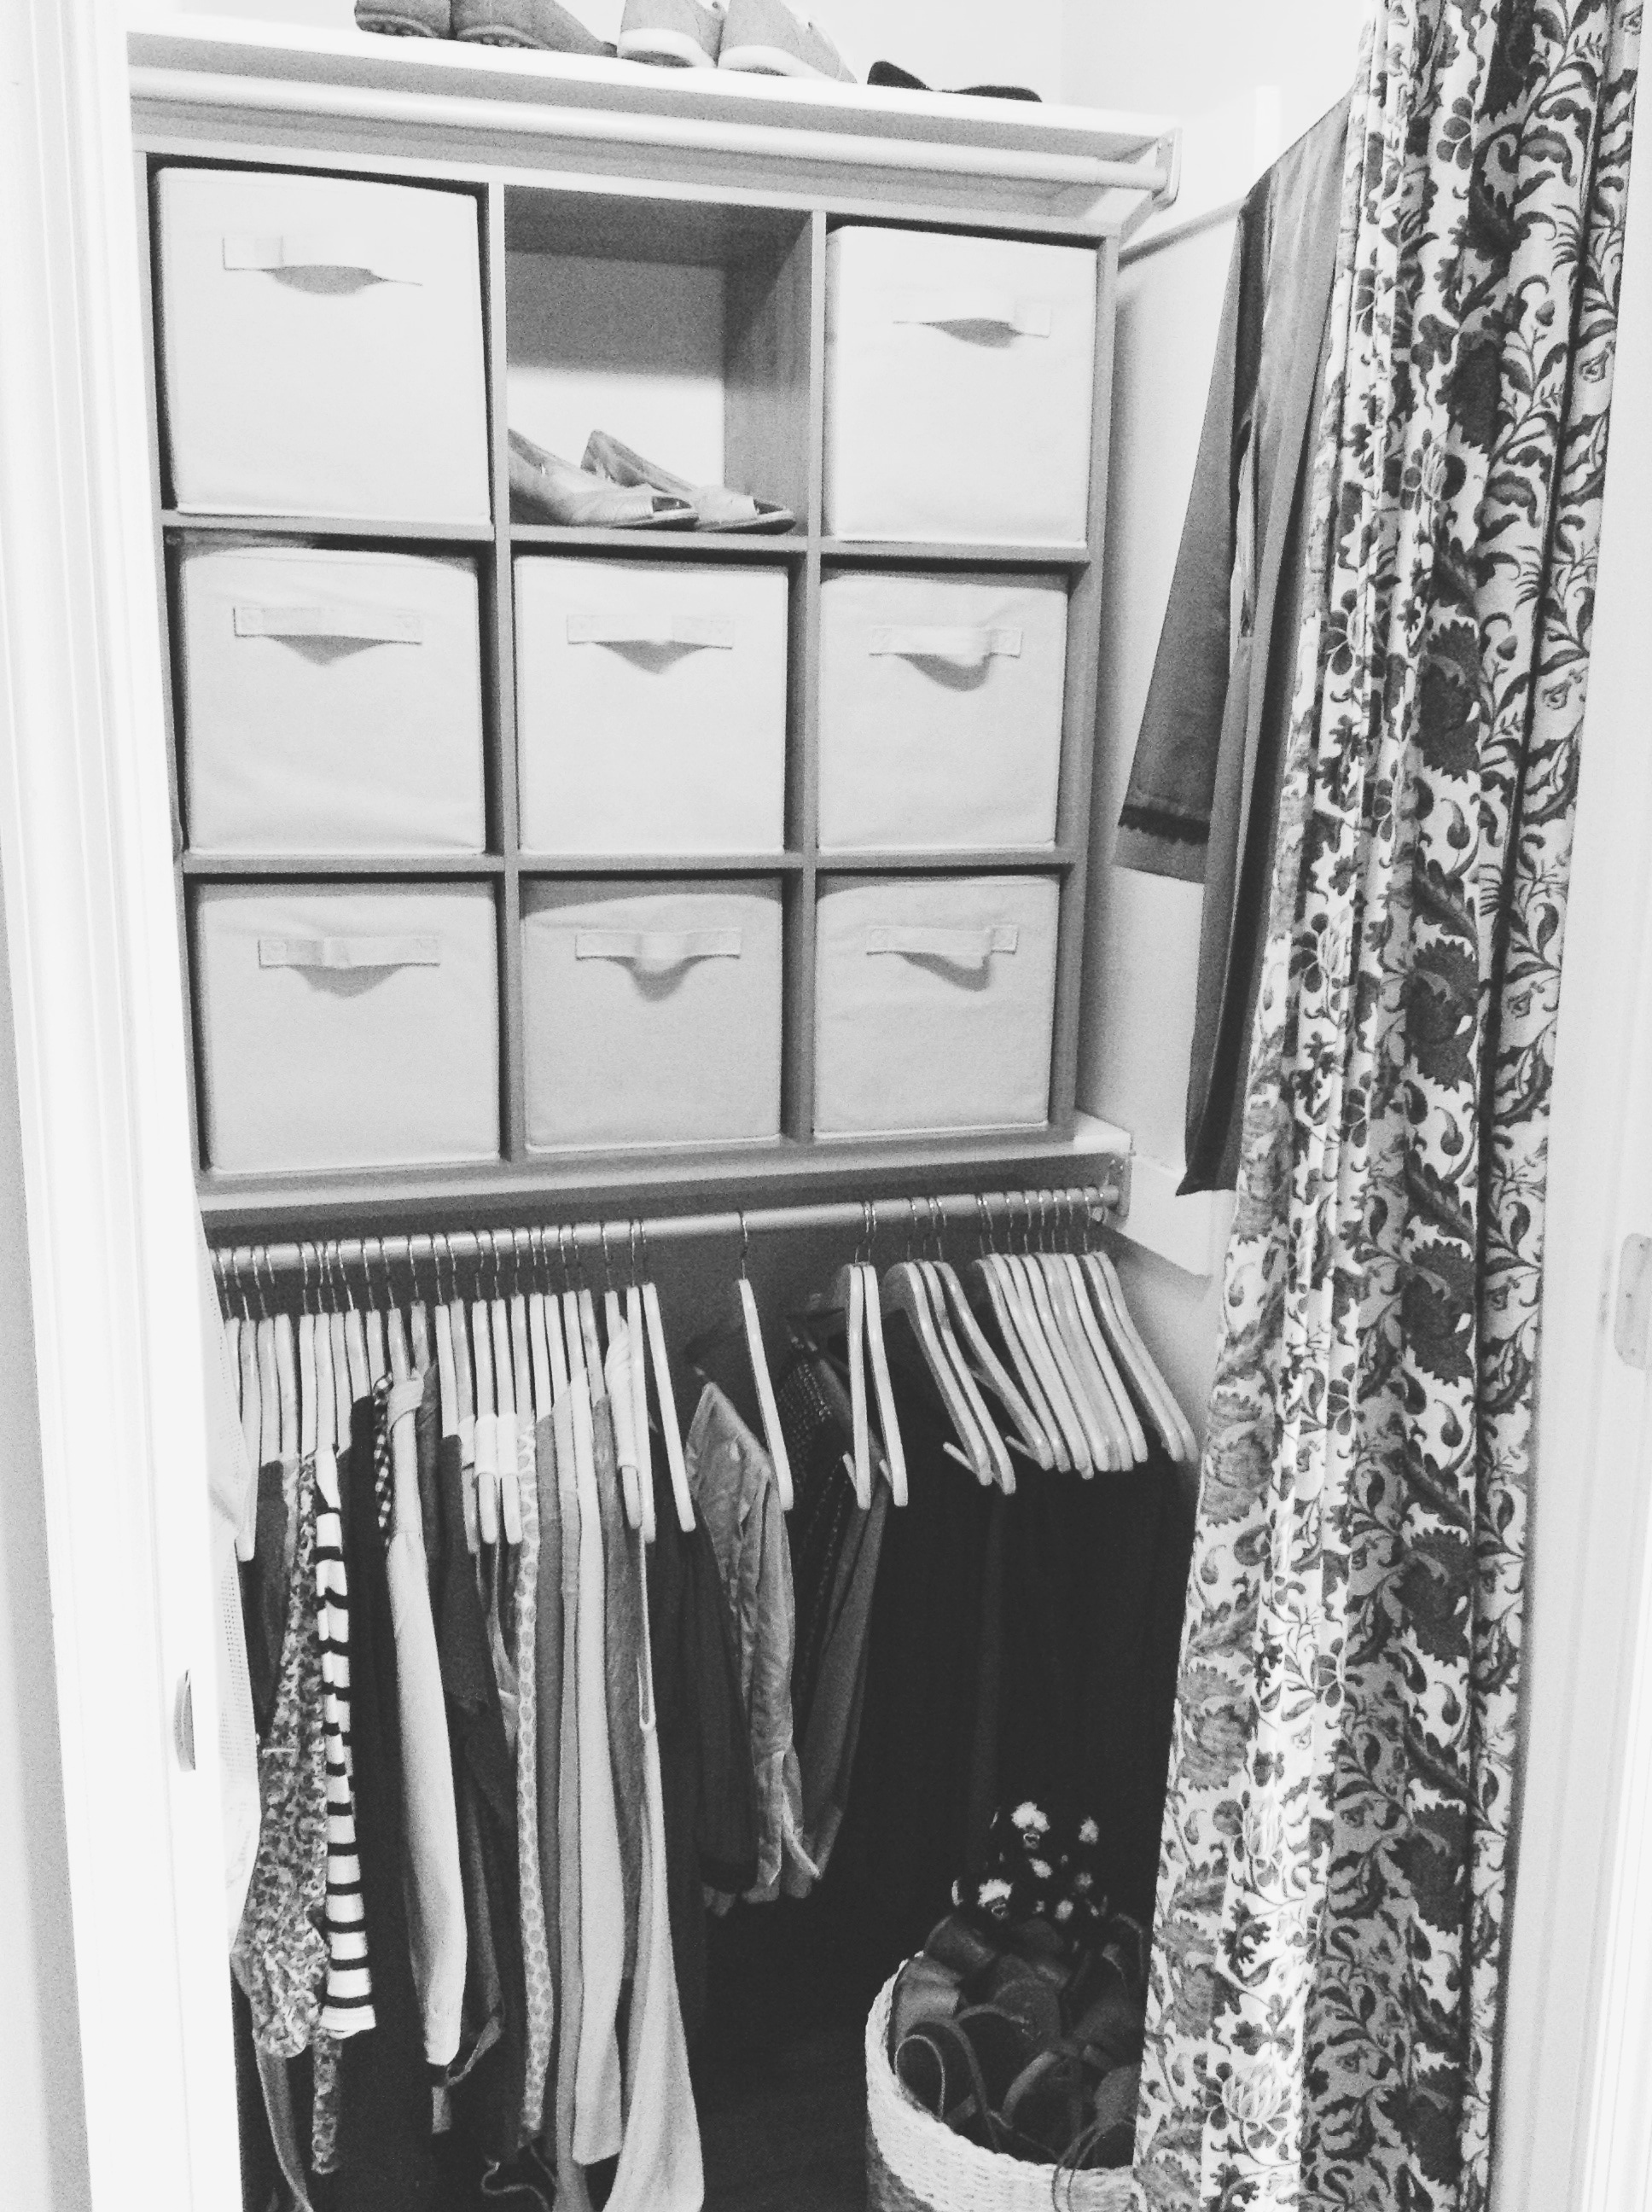 Reorganized closet with maternity clothes that fit this gangly body and bulging bump.